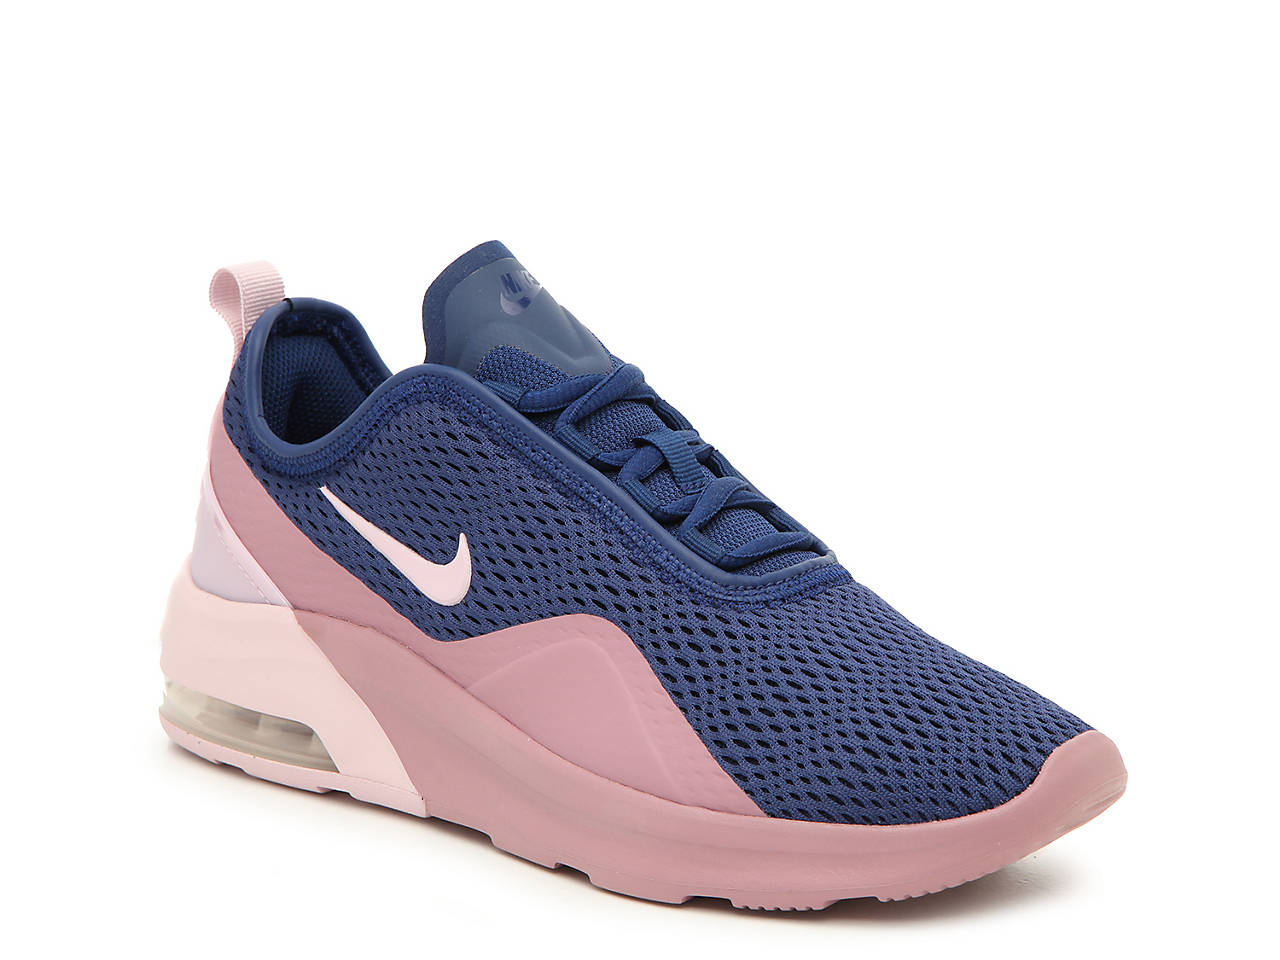 Nike Air Max Motion 2 Sneaker - Women s Women s Shoes  bbbebfe84